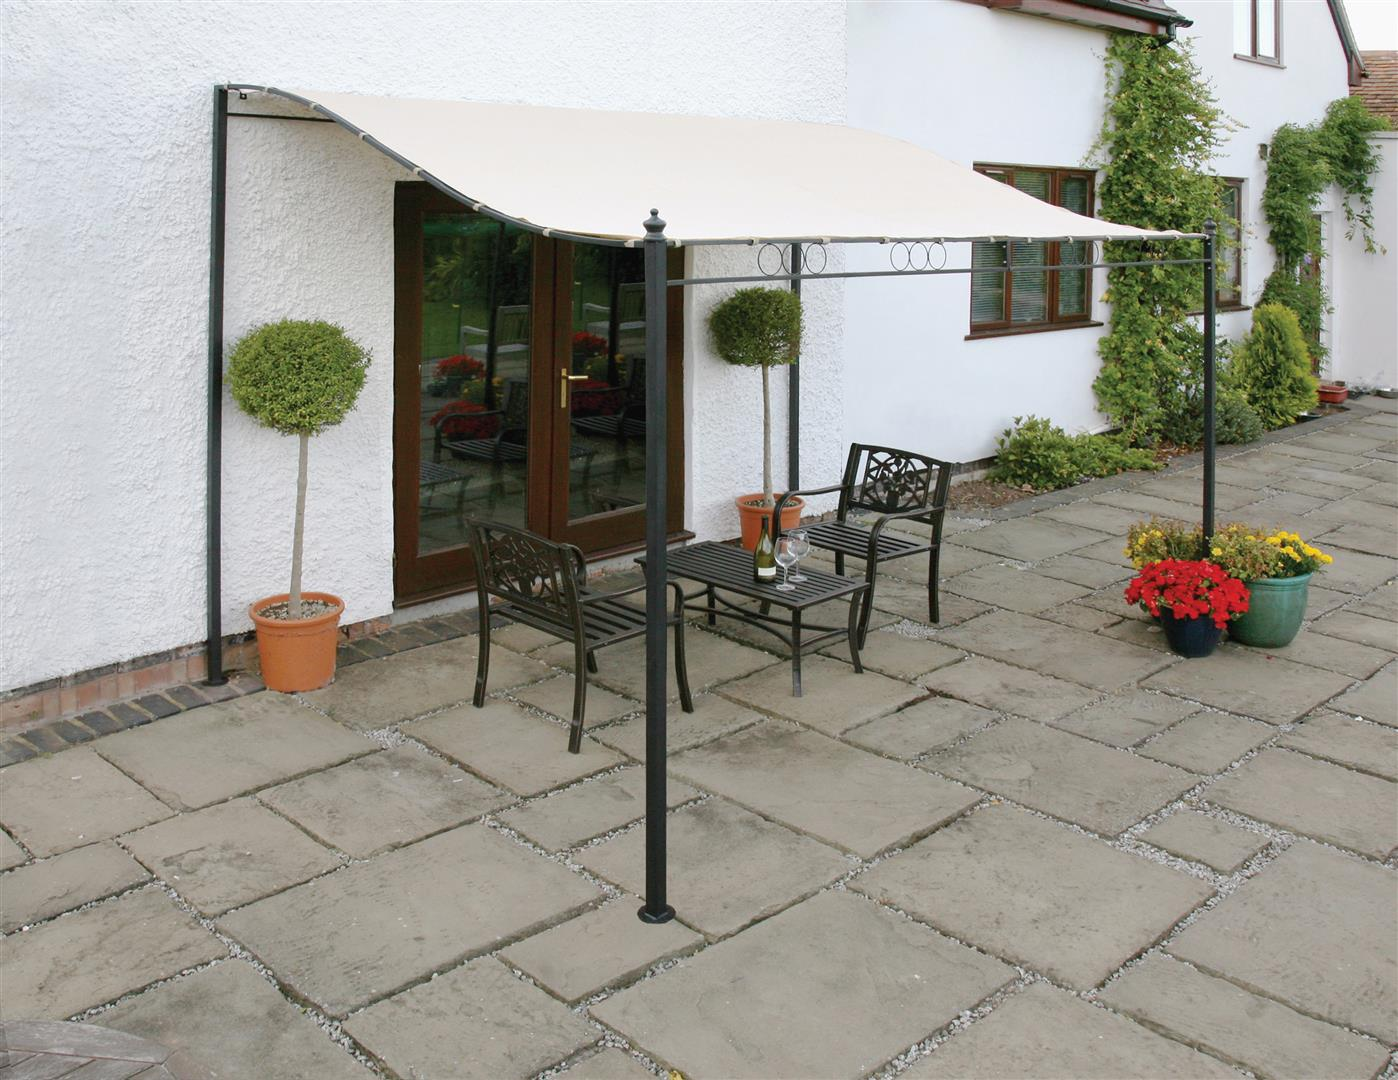 3M x 2.5M Wall Mounted Gazebo